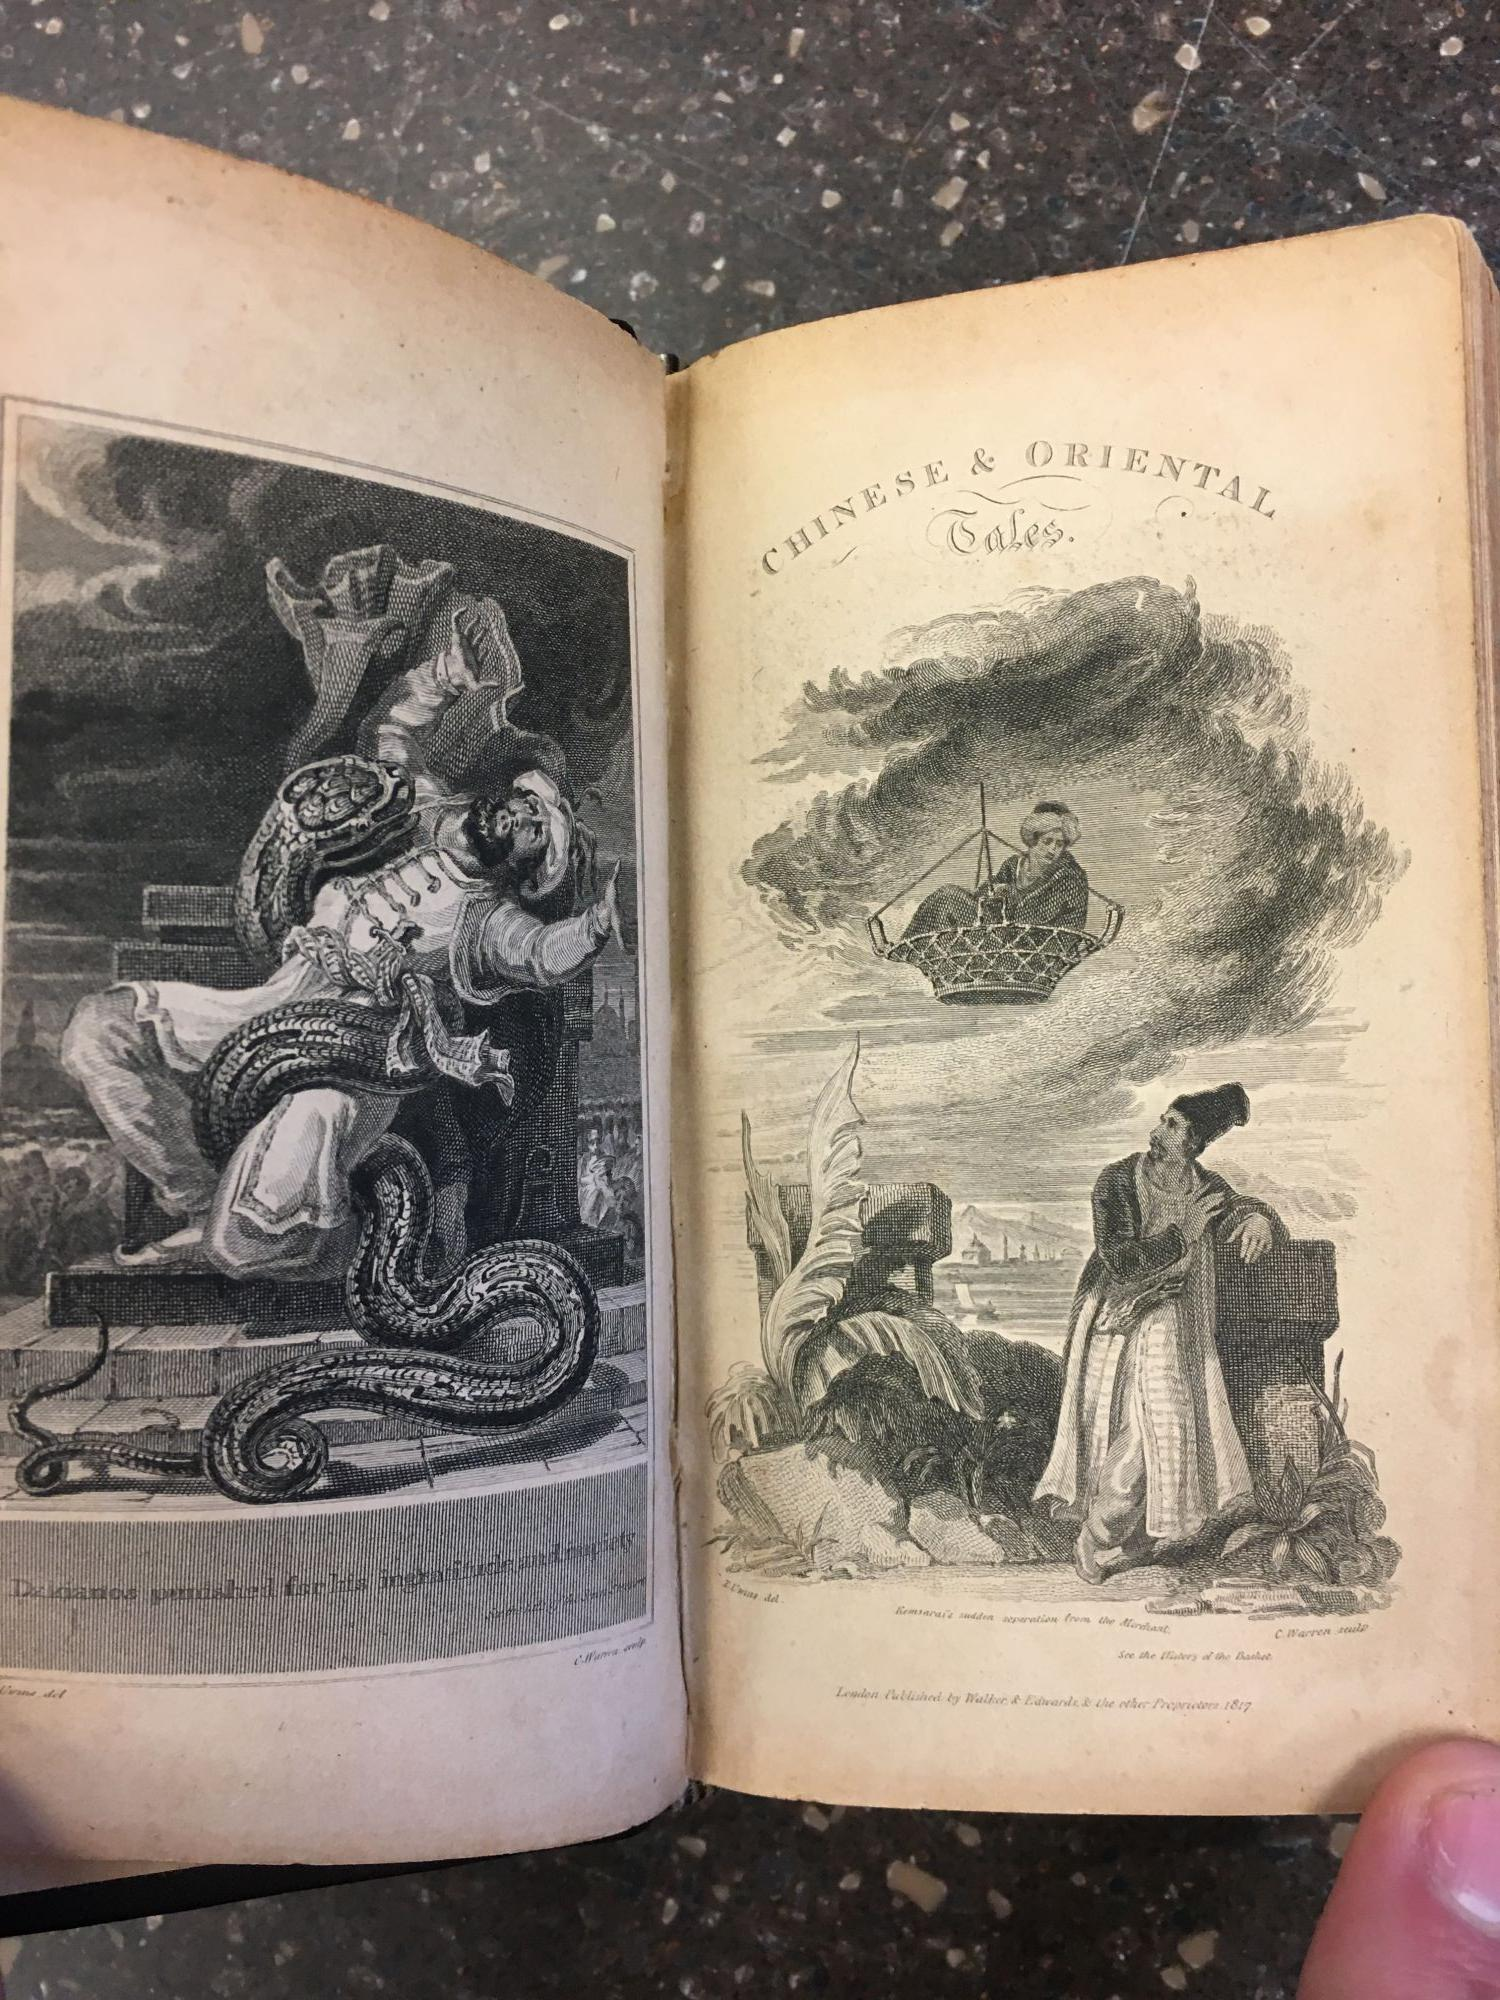 CHINESE TALES; OR THE MARVELLOUS ADVENTURES OF THE MANDARIN FUM-HOAM. ORIENTAL TALES [TWO PARTS IN ONE]. Thomas Simon Gueulette, Comte de Caylus.